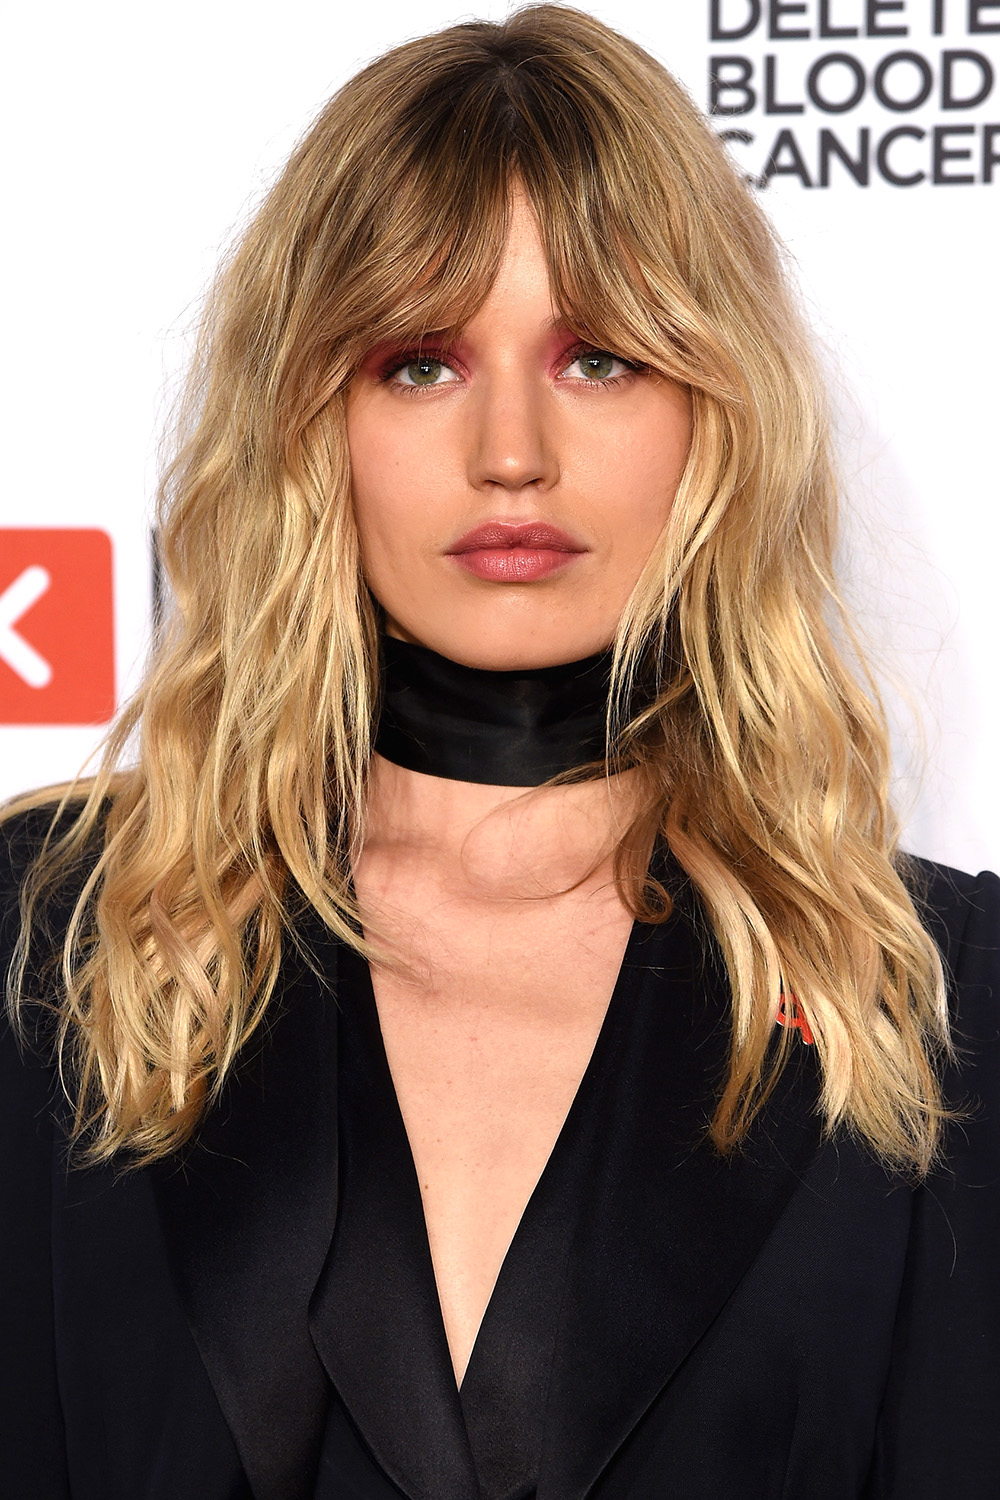 Amazing 33 Best Medium Hairstyles Celebrities With Shoulder Length Haircuts Short Hairstyles For Black Women Fulllsitofus